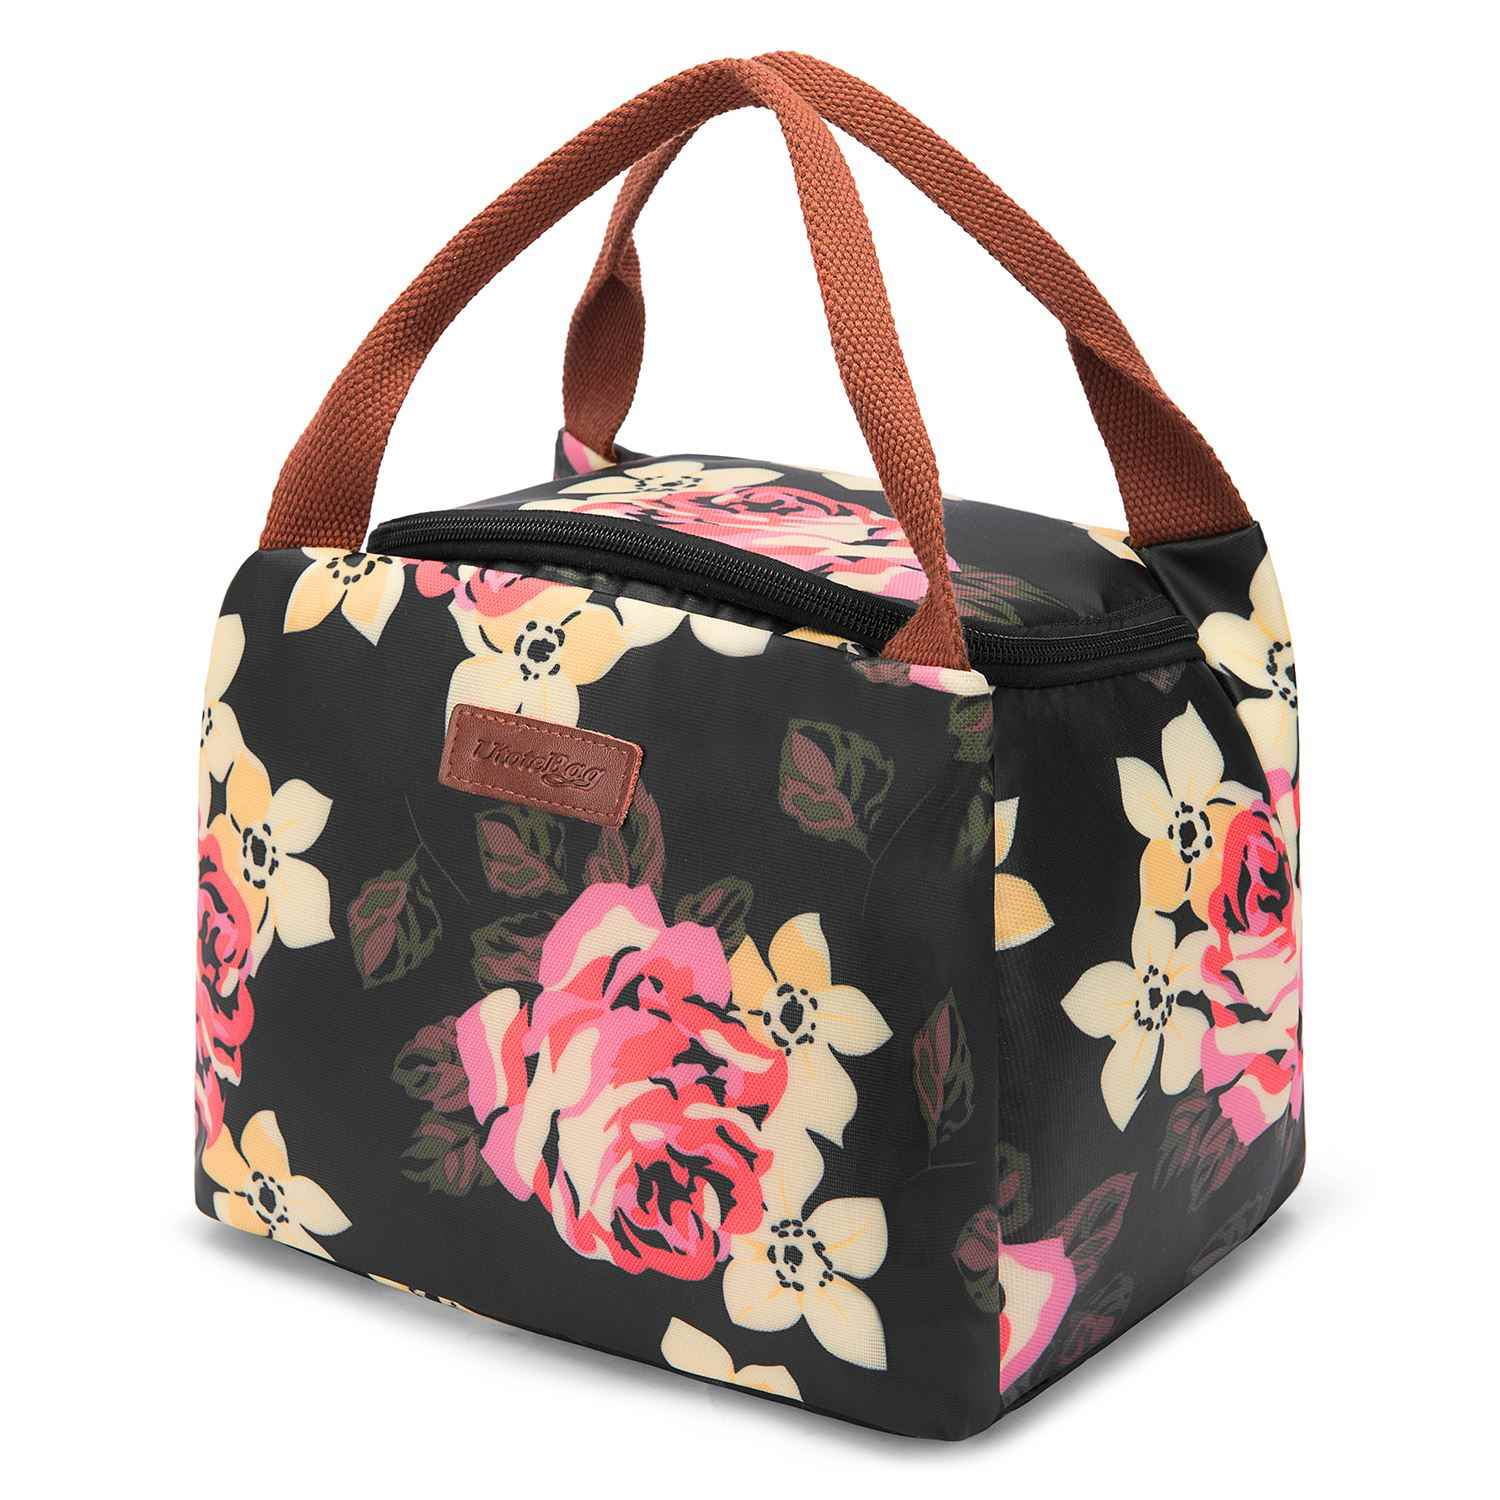 91f90cae4b7a Portable Insulated Thermal Lunch Bag Lunch Cooler Box Tote Picnic Food  Storage Bag Pouch Lunch Bags For Kids Women Men